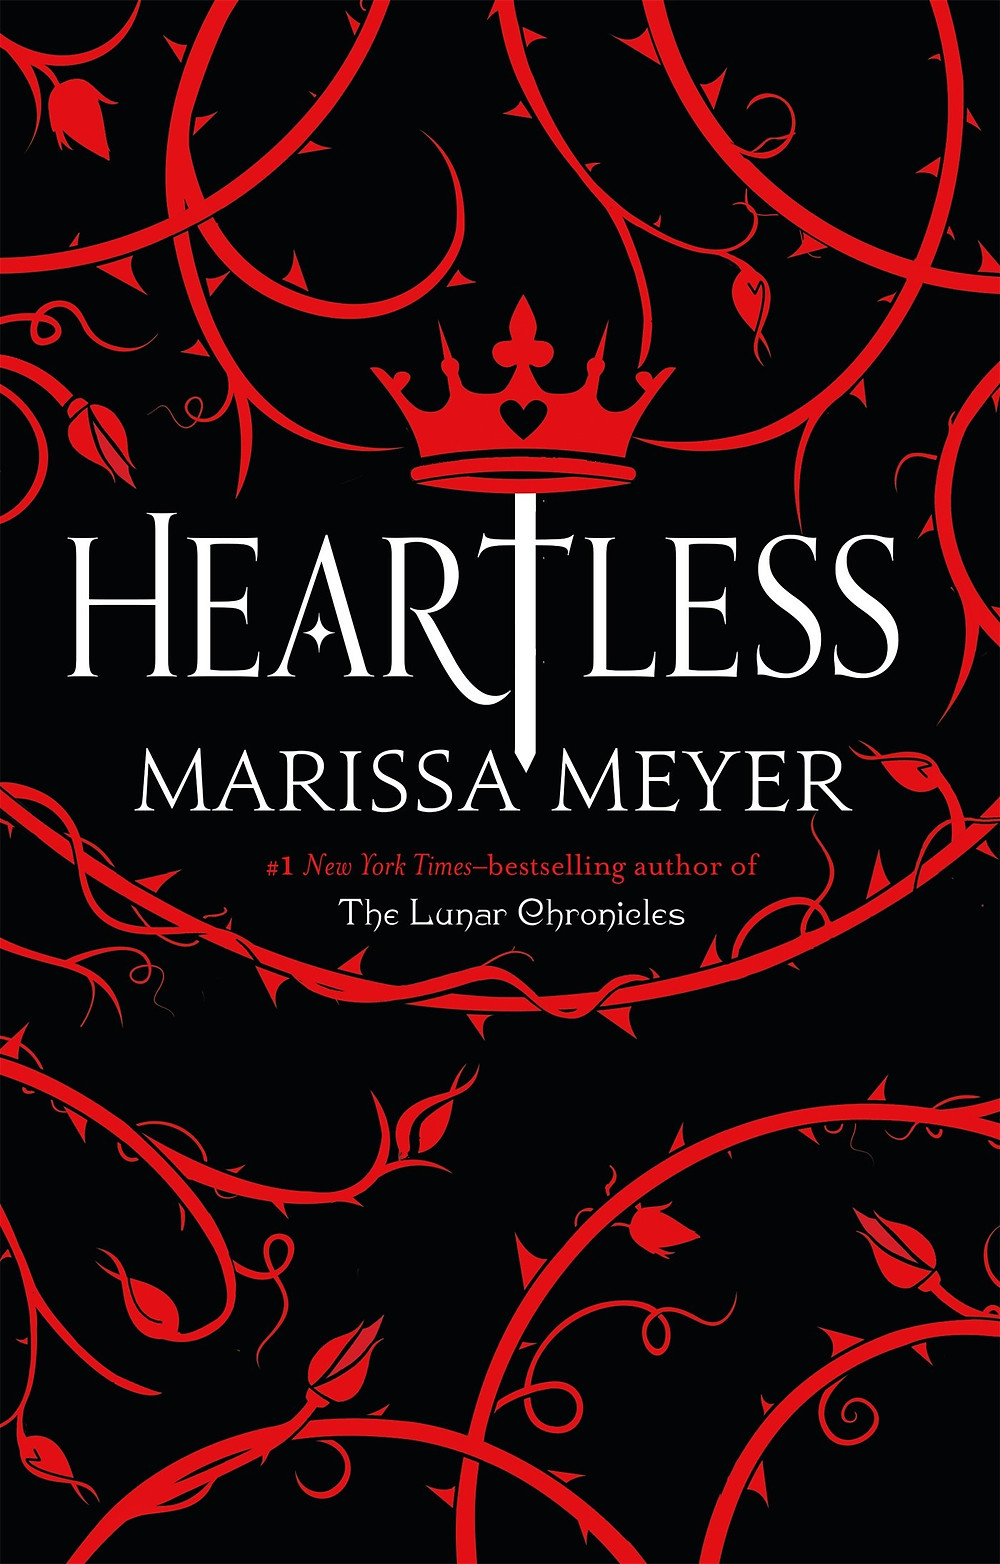 Heartless Marissa Meyer broken hearts Coffee, Book, and Candle